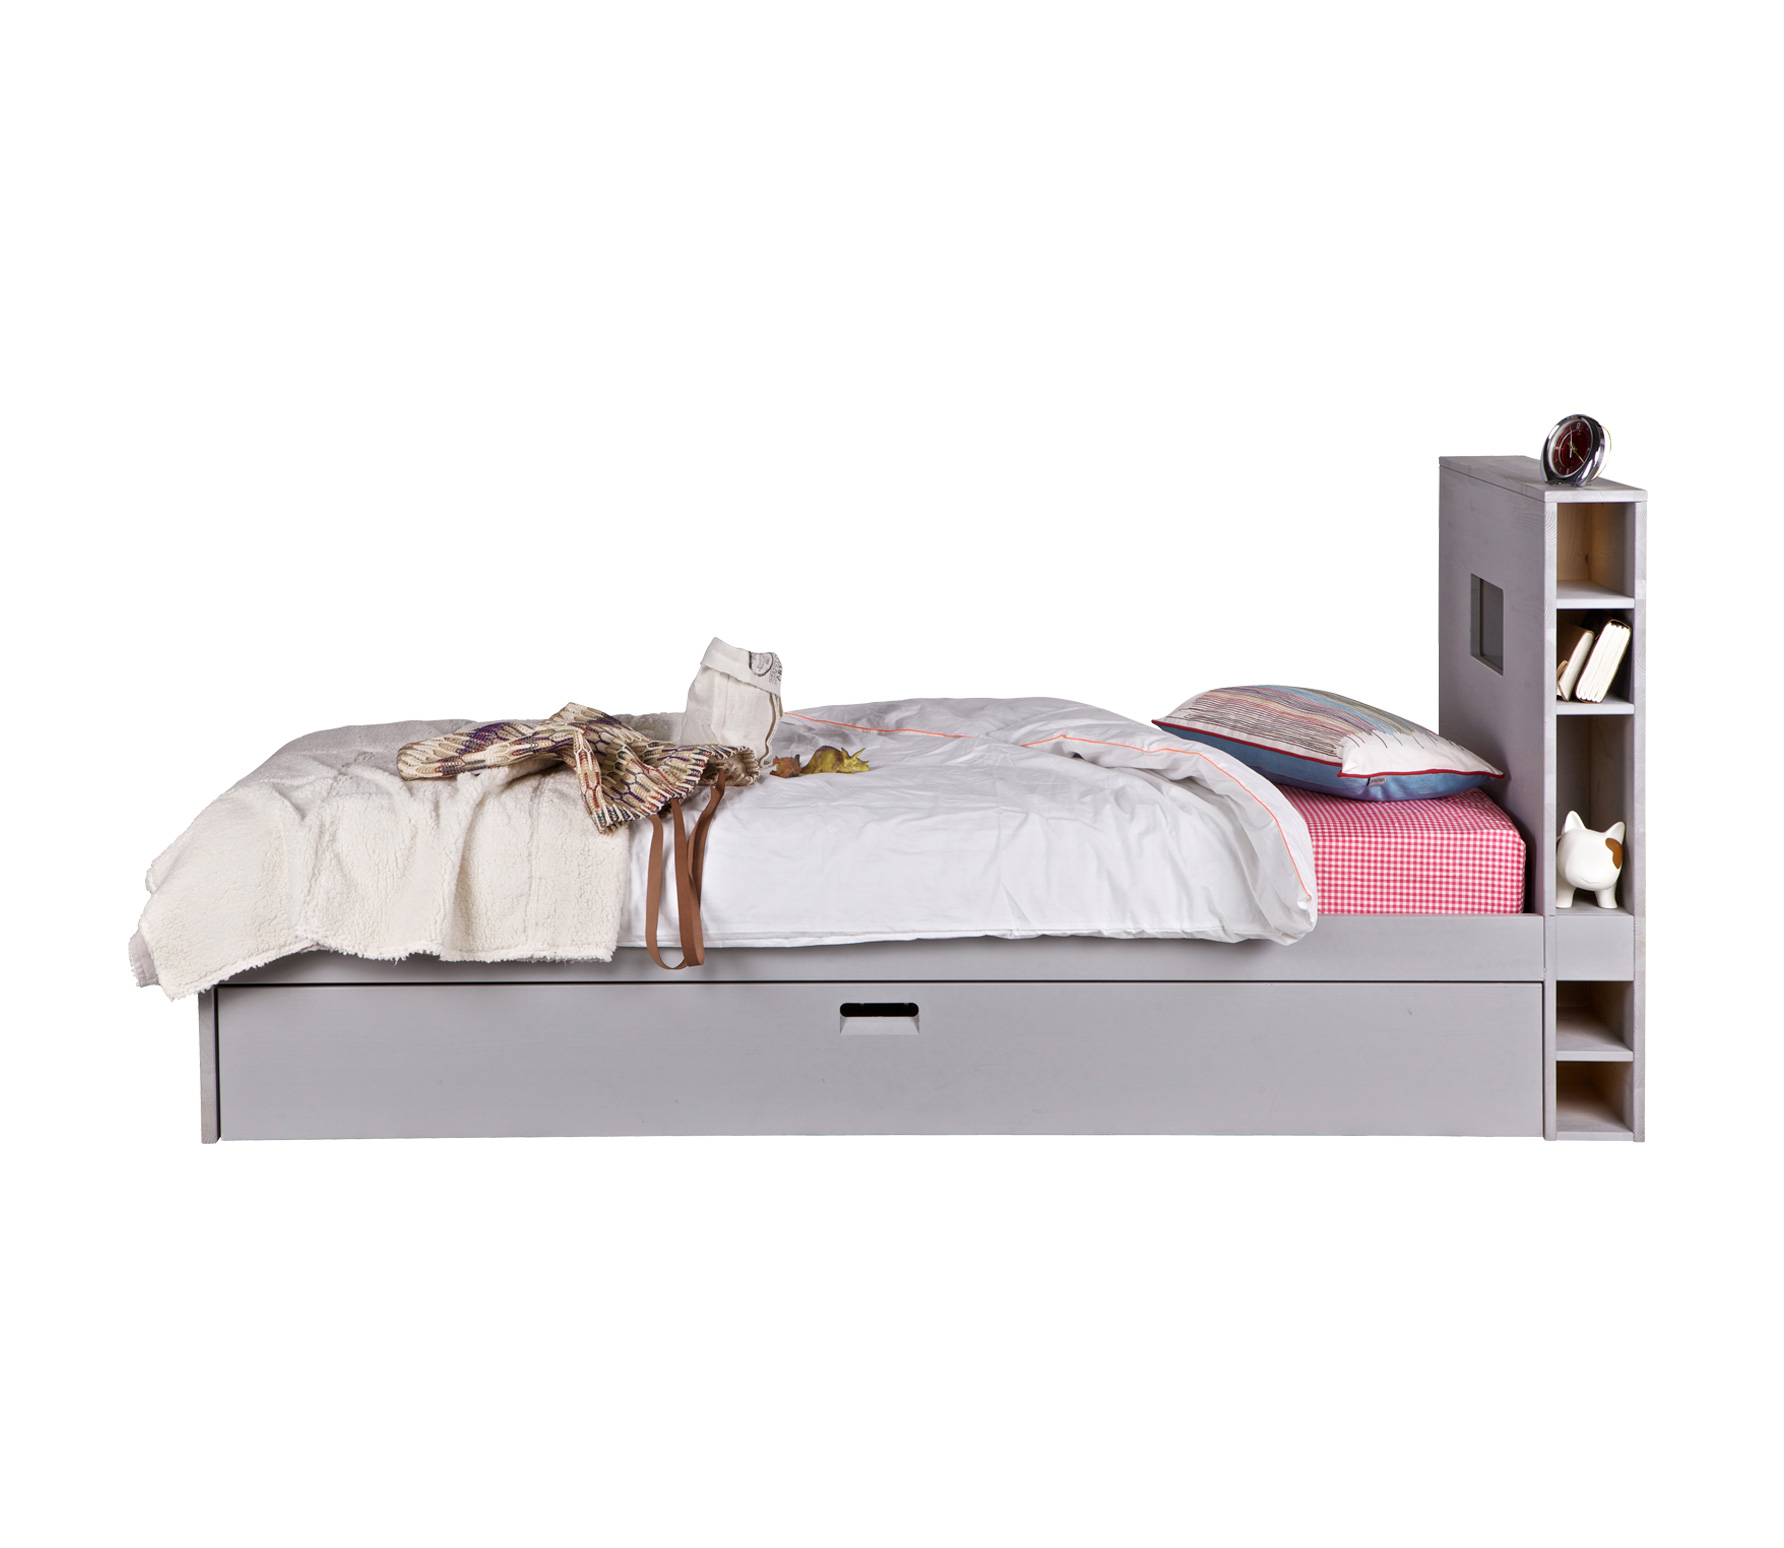 Boat Bed With Trundle And Toy Box Storage: Chase Storage Bed With Underbed Trundle